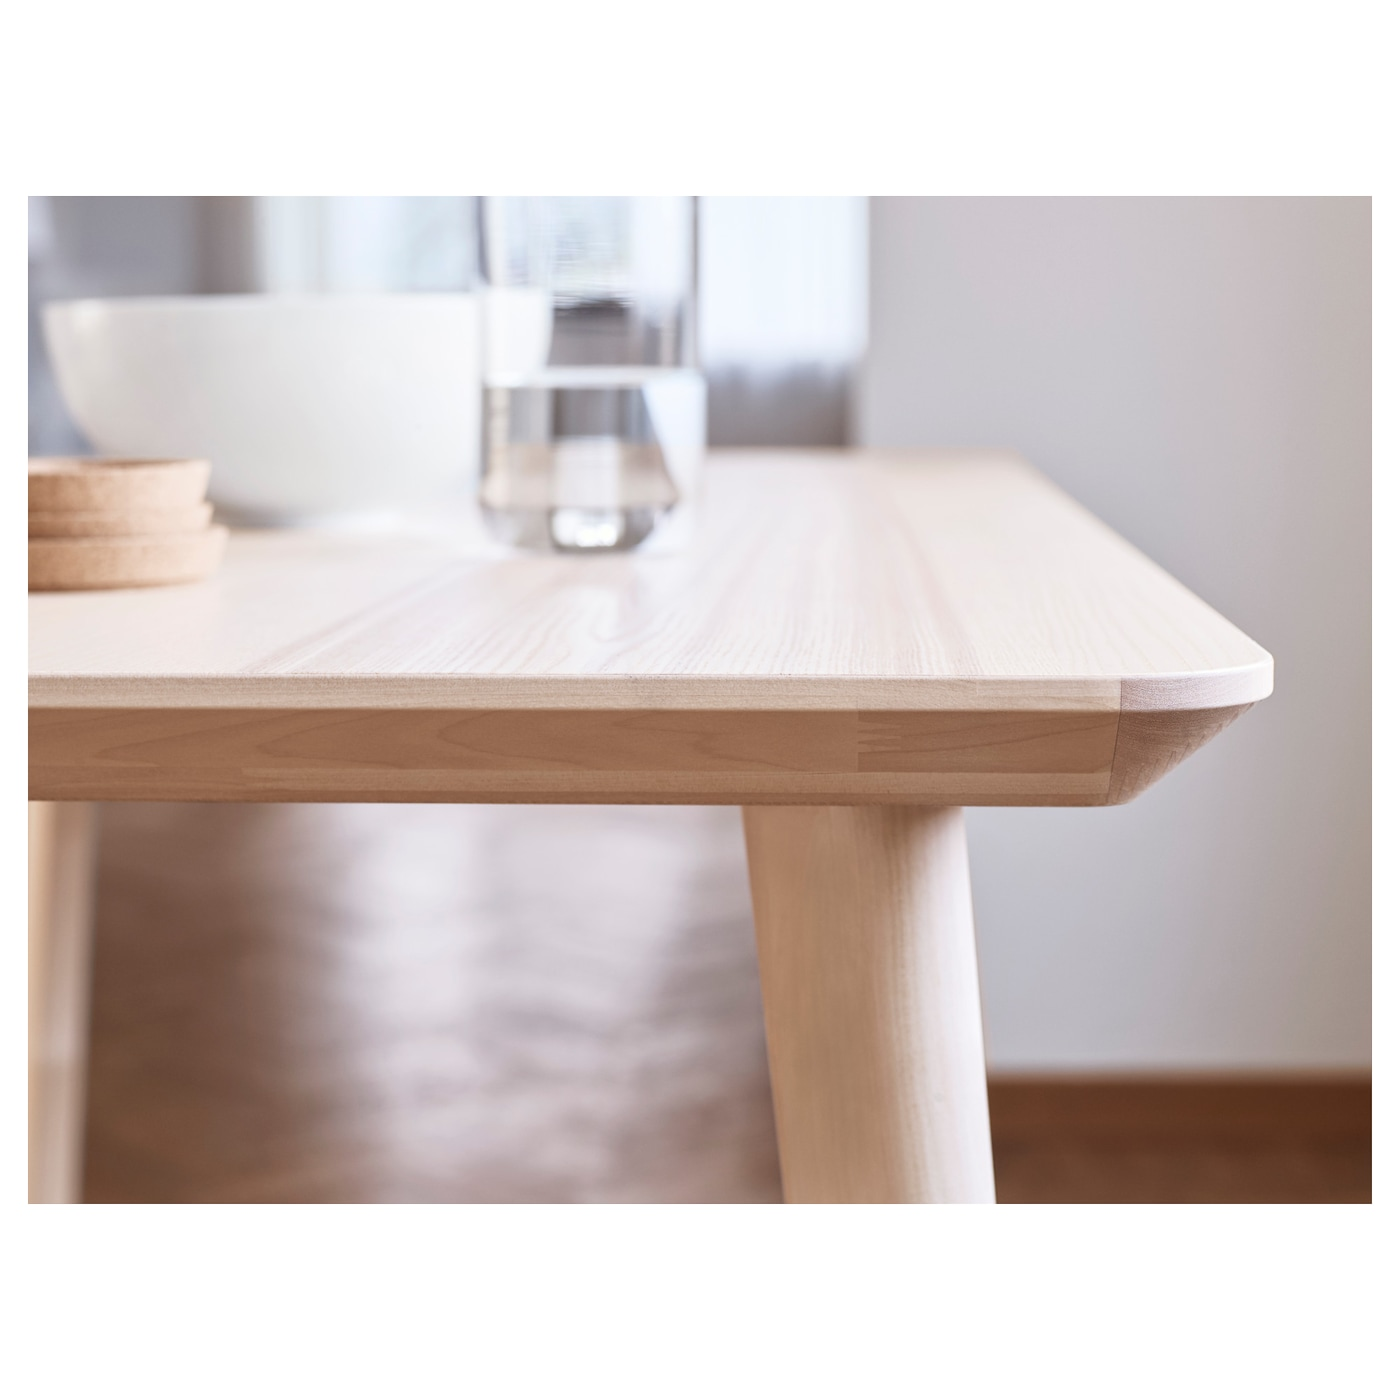 Lisabo coffee table ash veneer 70x70 cm ikea - Table basse transformable en table haute ikea ...